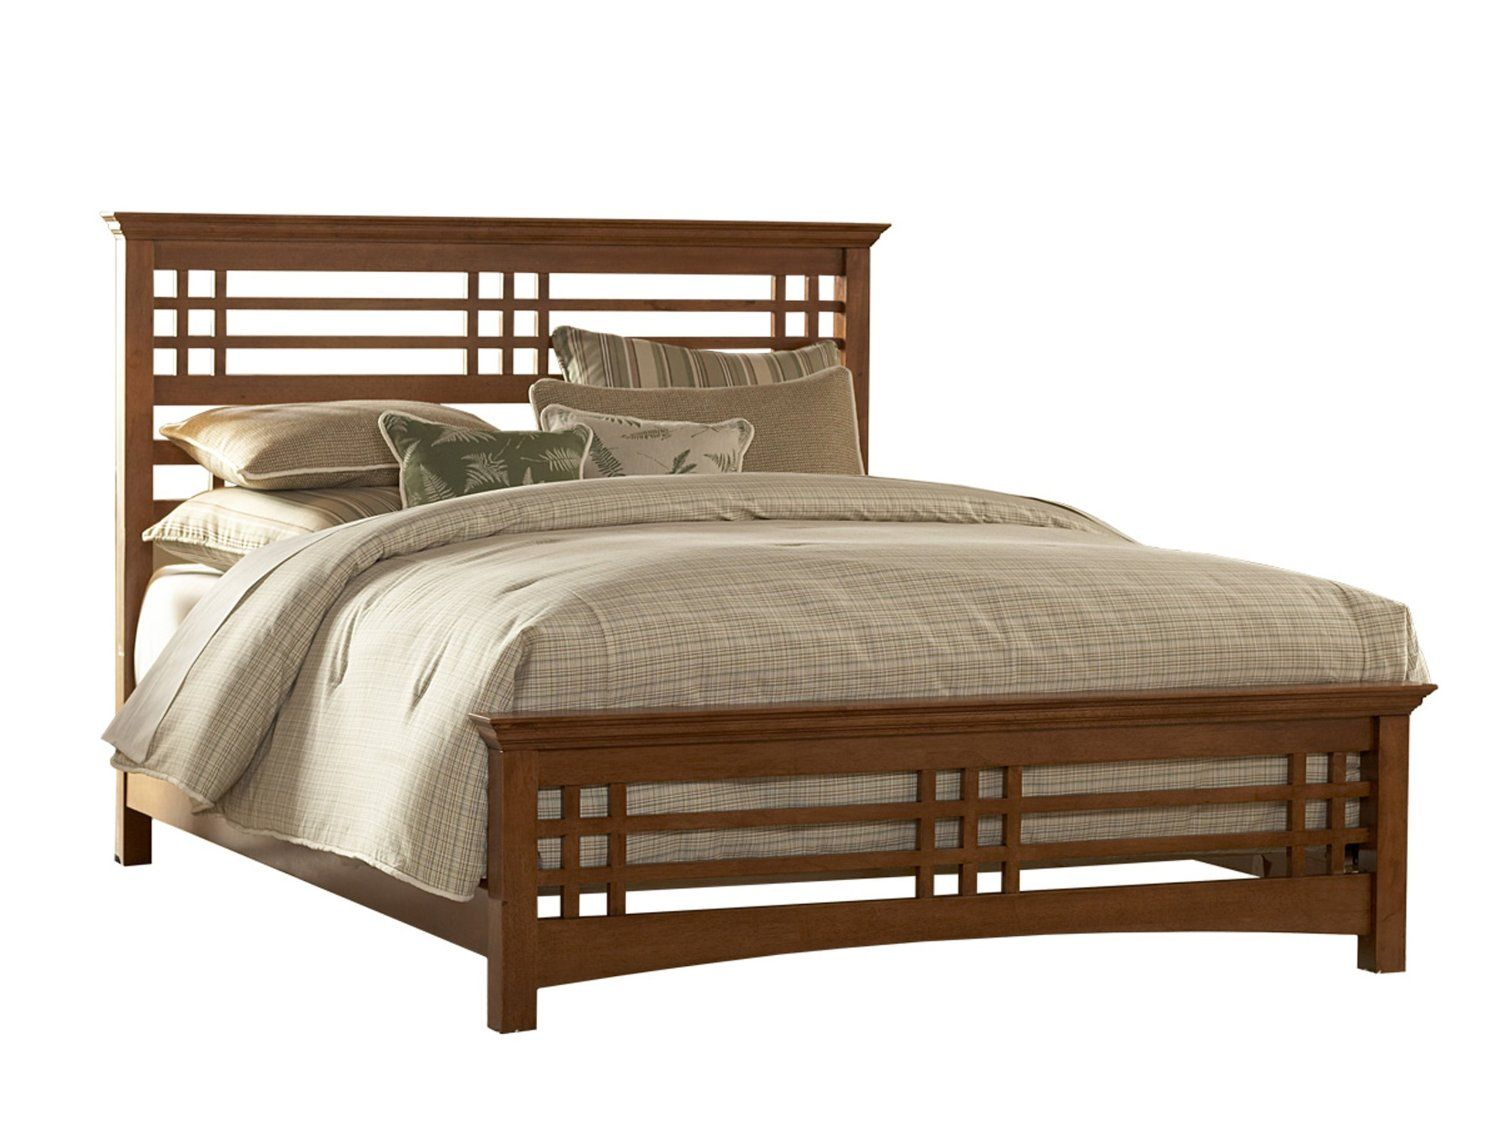 bedroom furniture styles Furnishing Homes with Mission